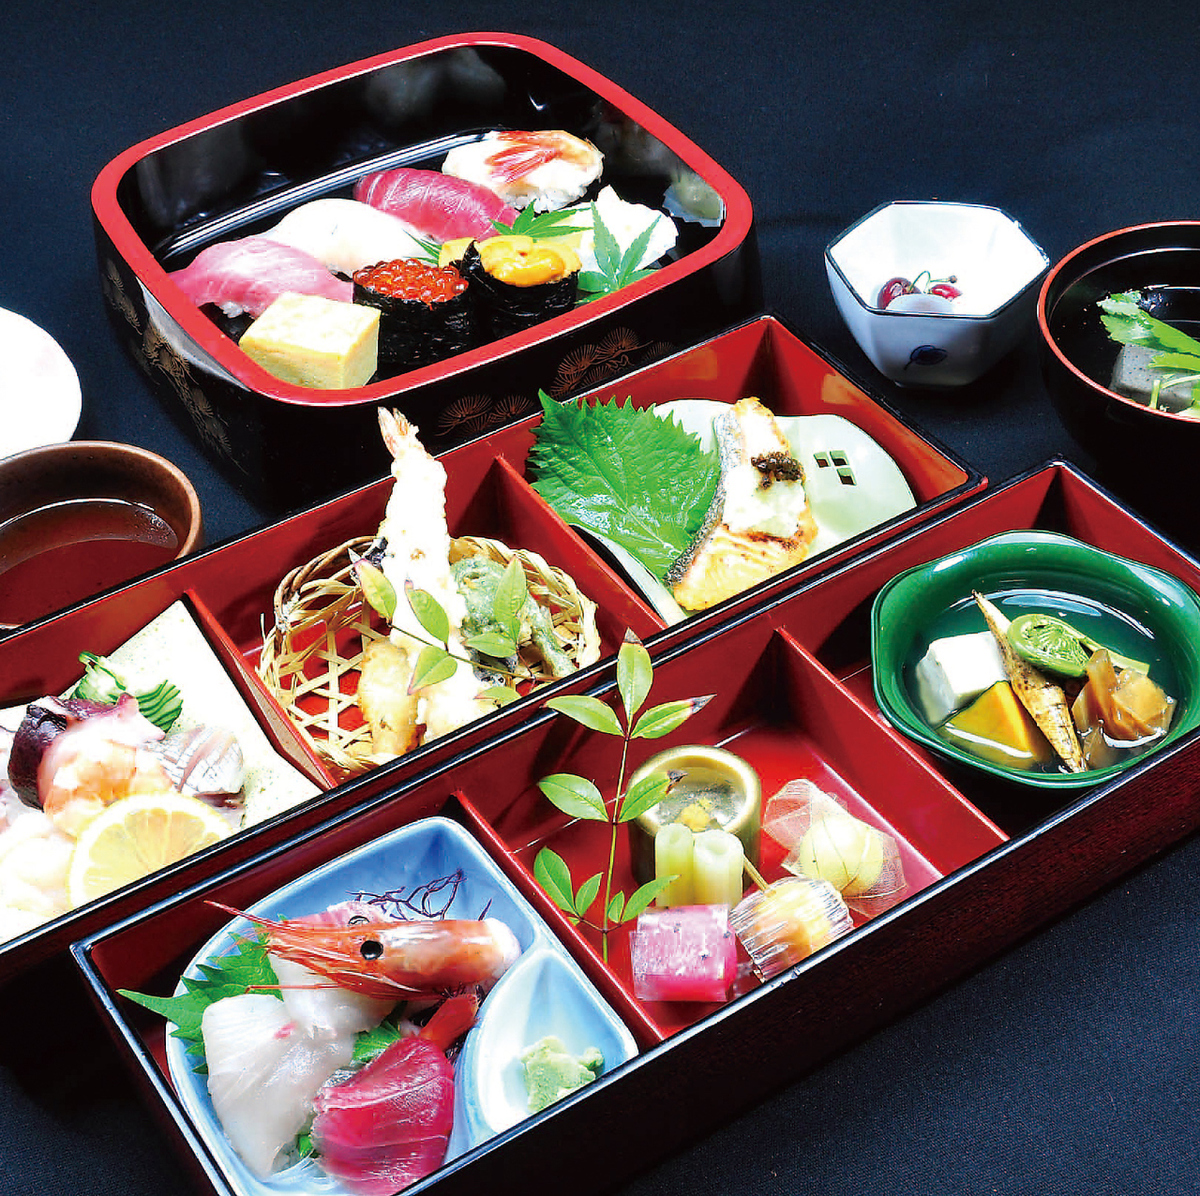 Conclusion ume lunchbox